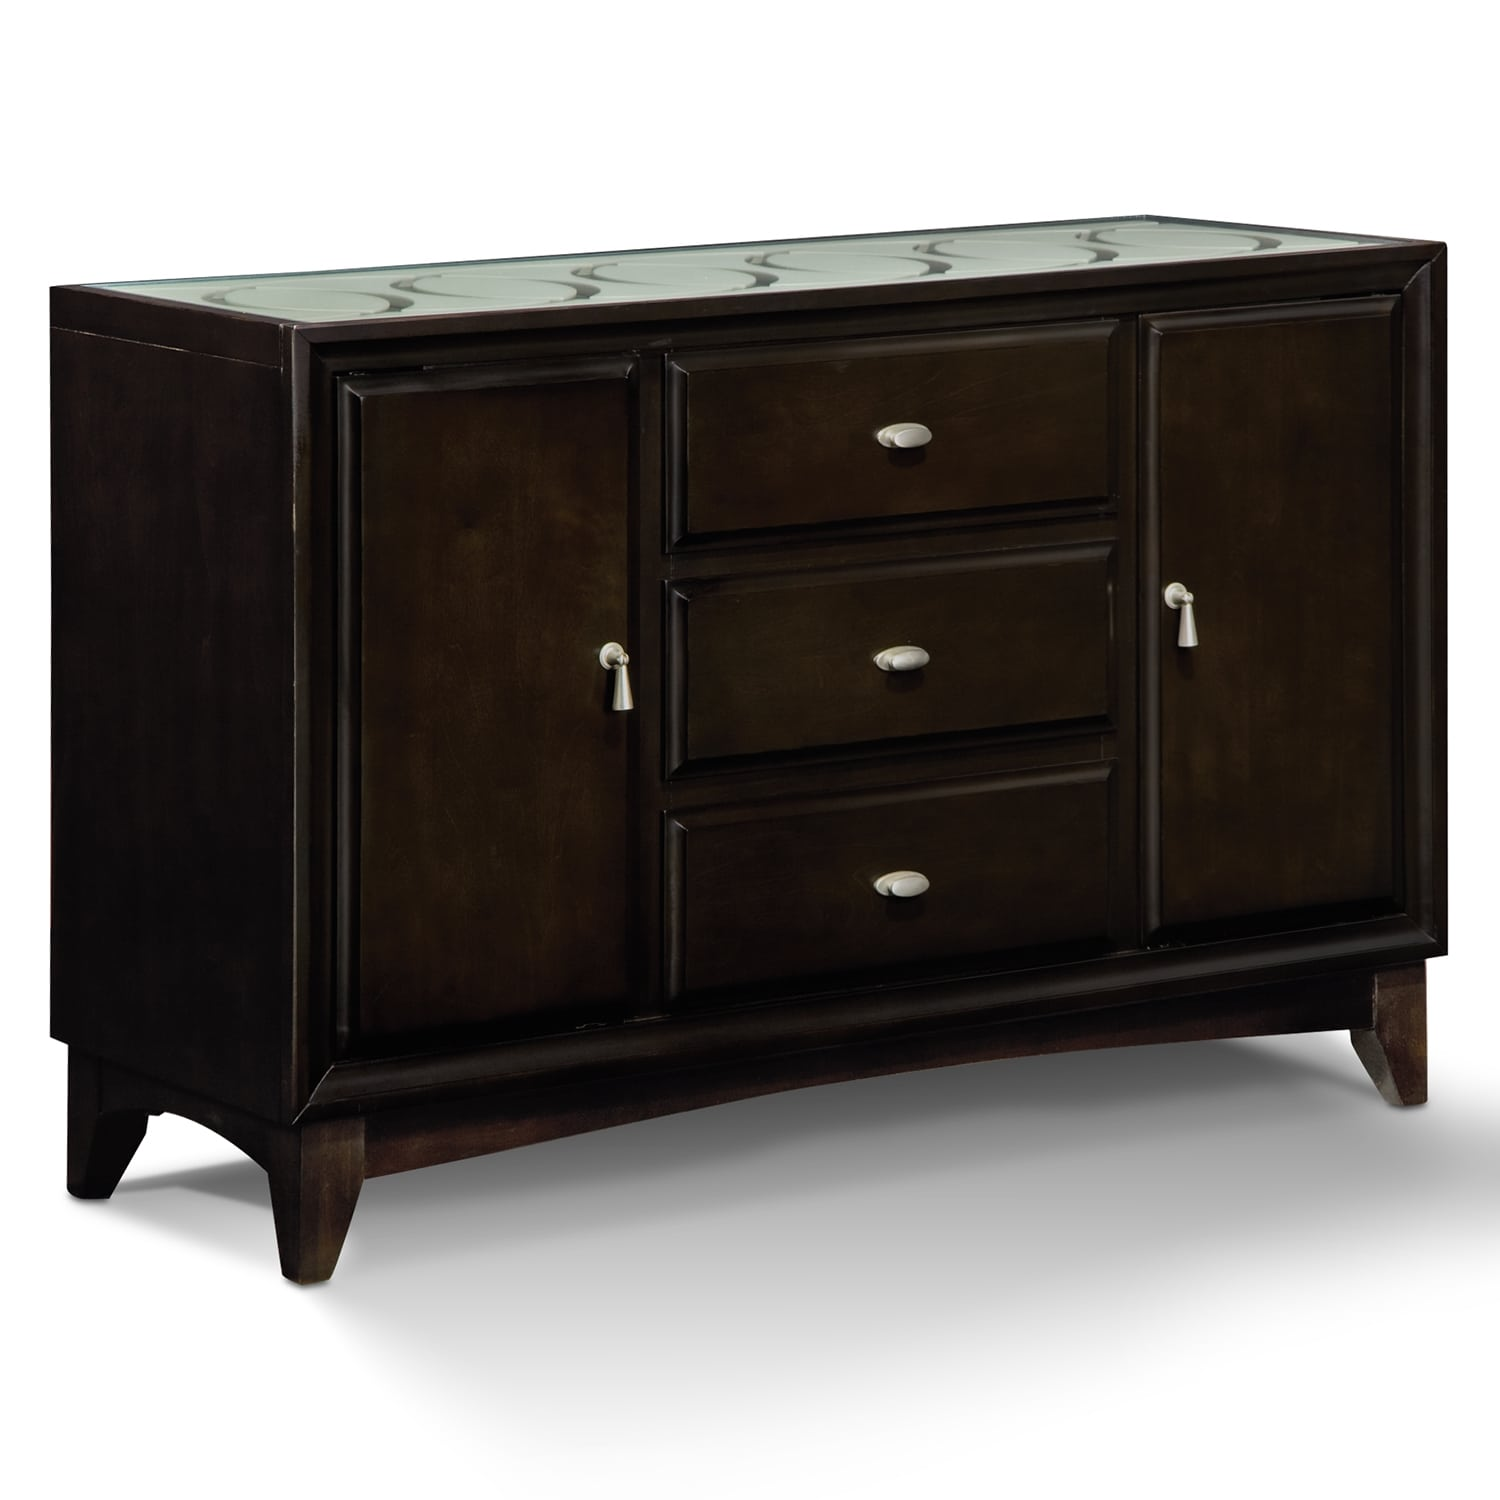 Dining Room Furniture - Cosmo Sideboard